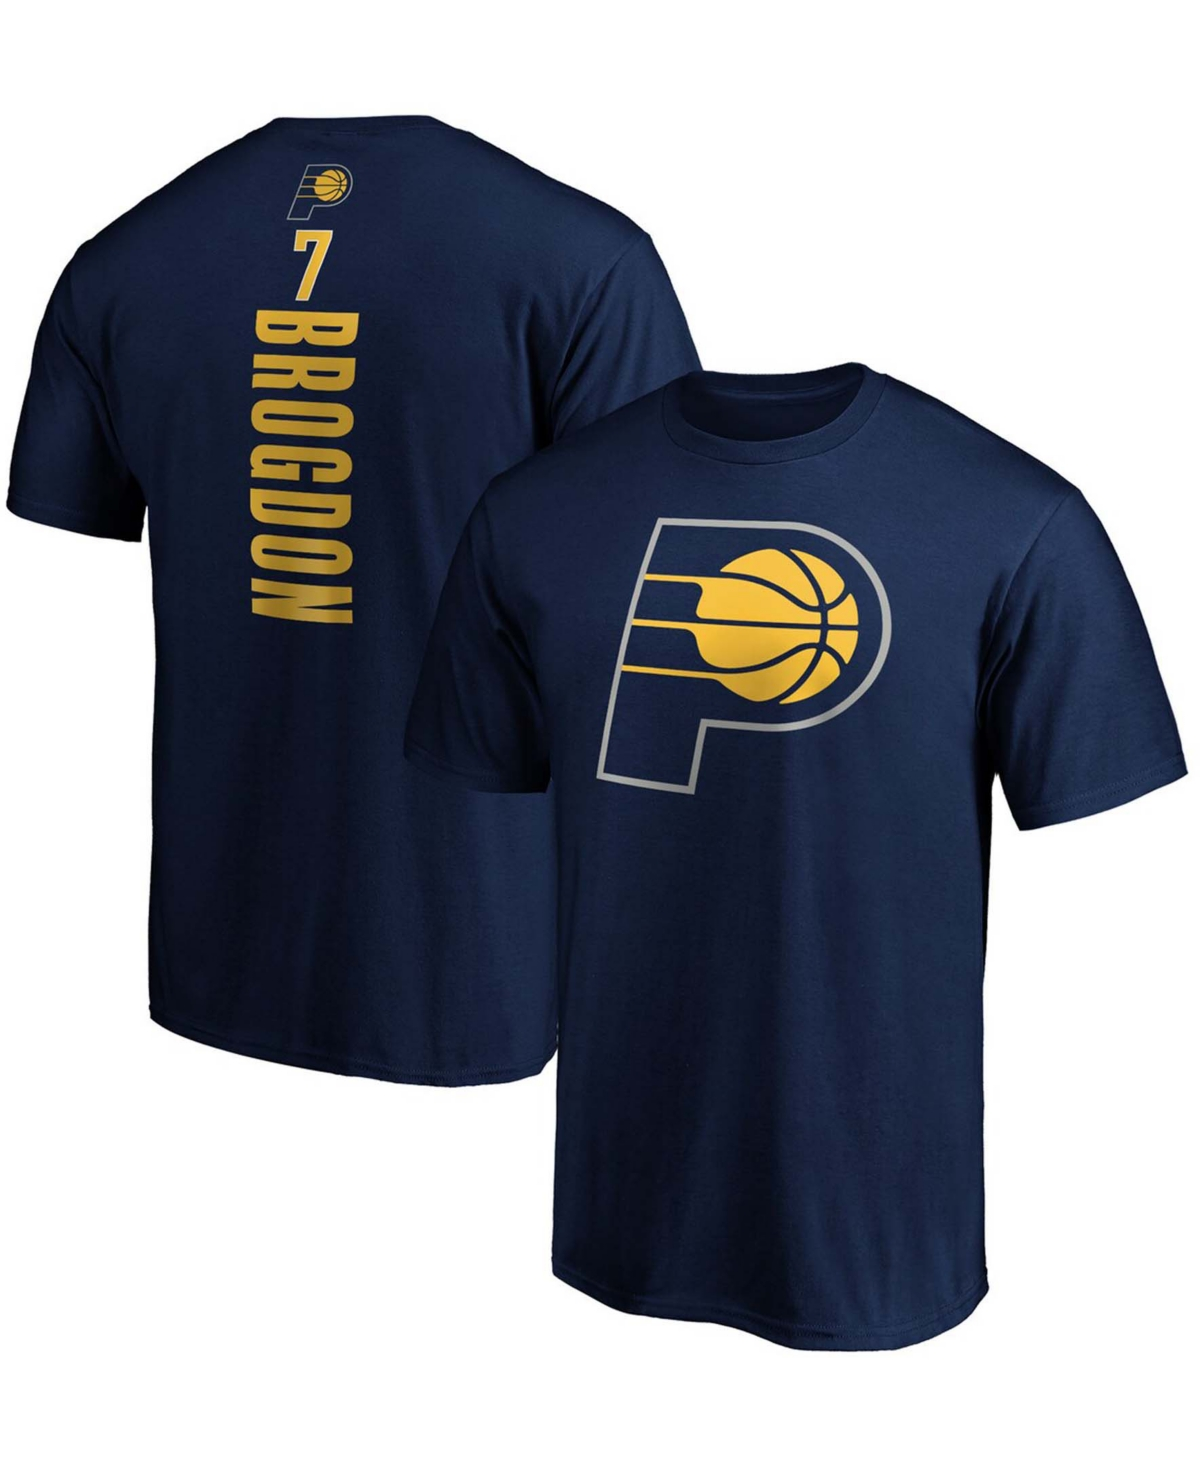 Men's Malcolm Brogdon Navy Indiana Pacers Team Playmaker Name and Number T-shirt